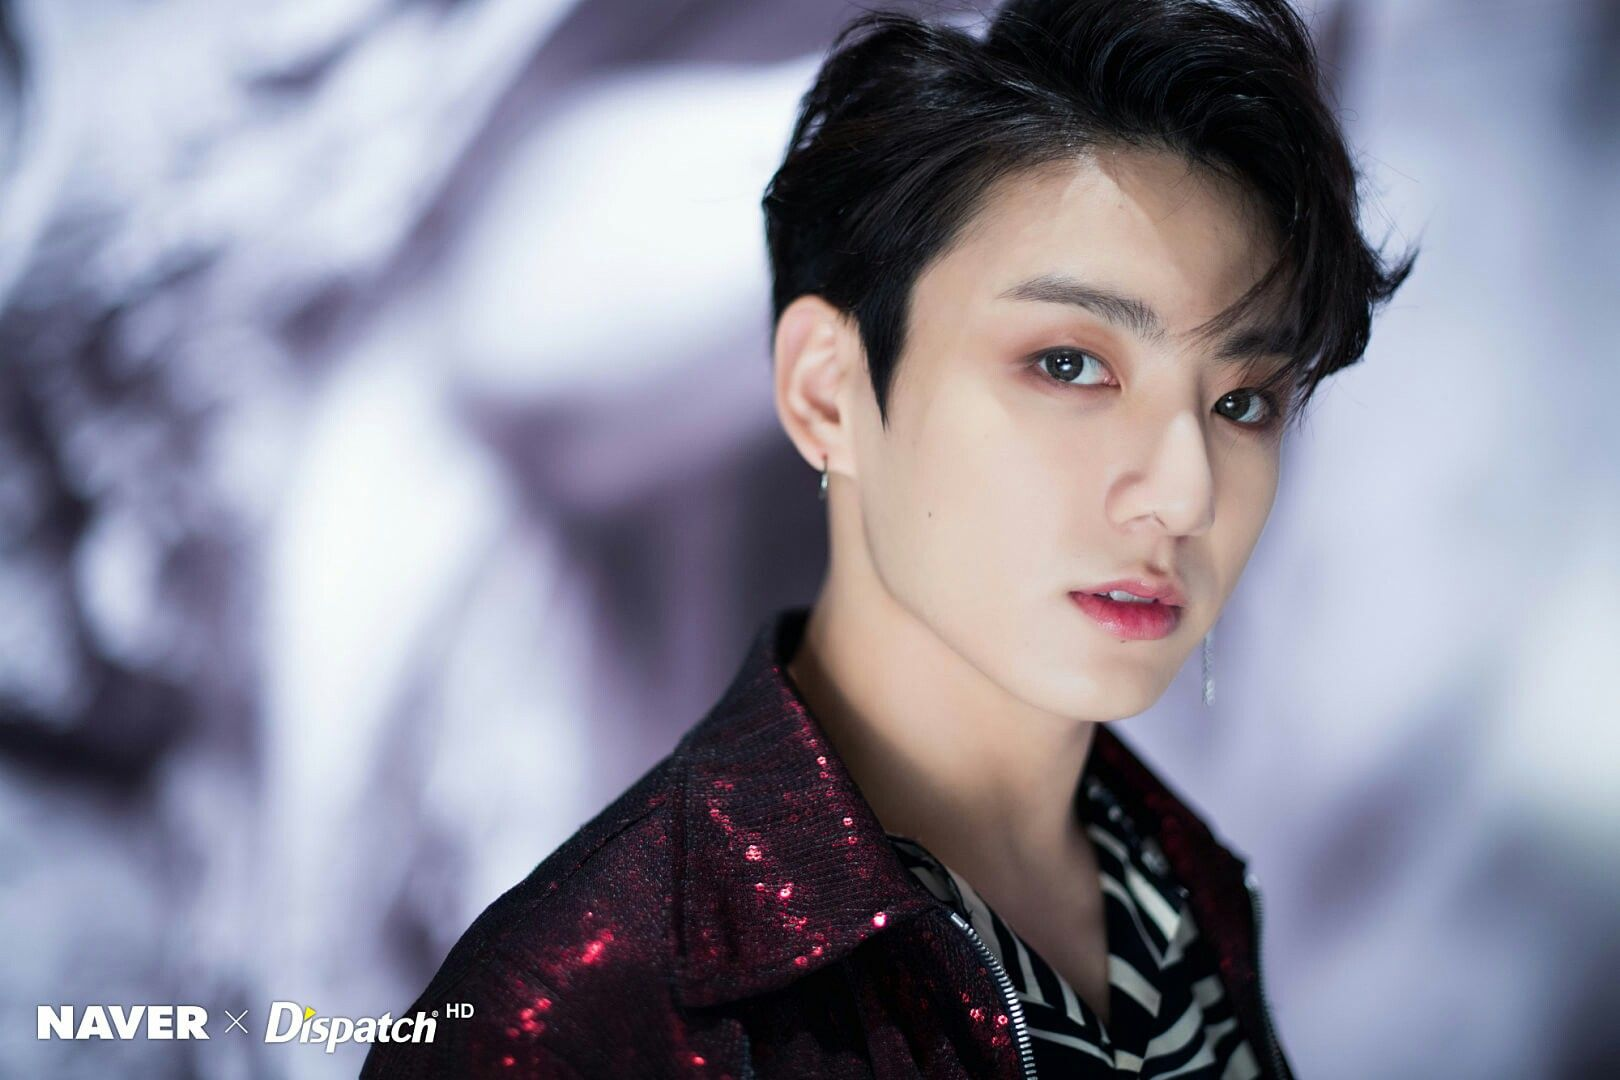 Jungkook Bts Naver X Dispatch Hd Fake Love Mv Behind The Scene